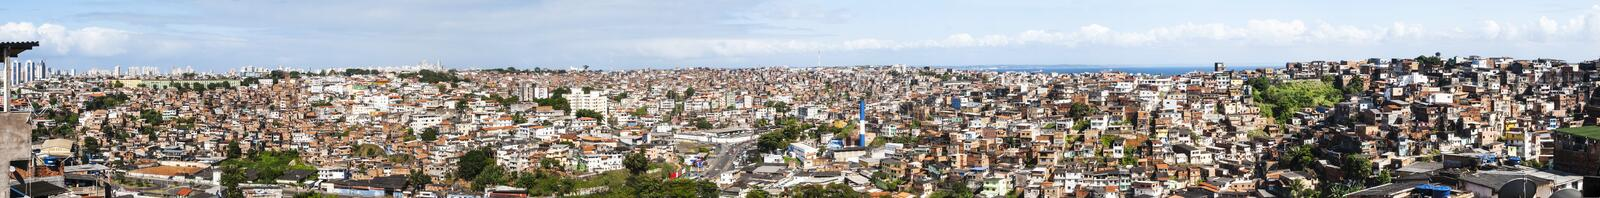 Salvador in Bahia, panoramic view. Panoramic view of Salvador in Bahia, Brazil stock images